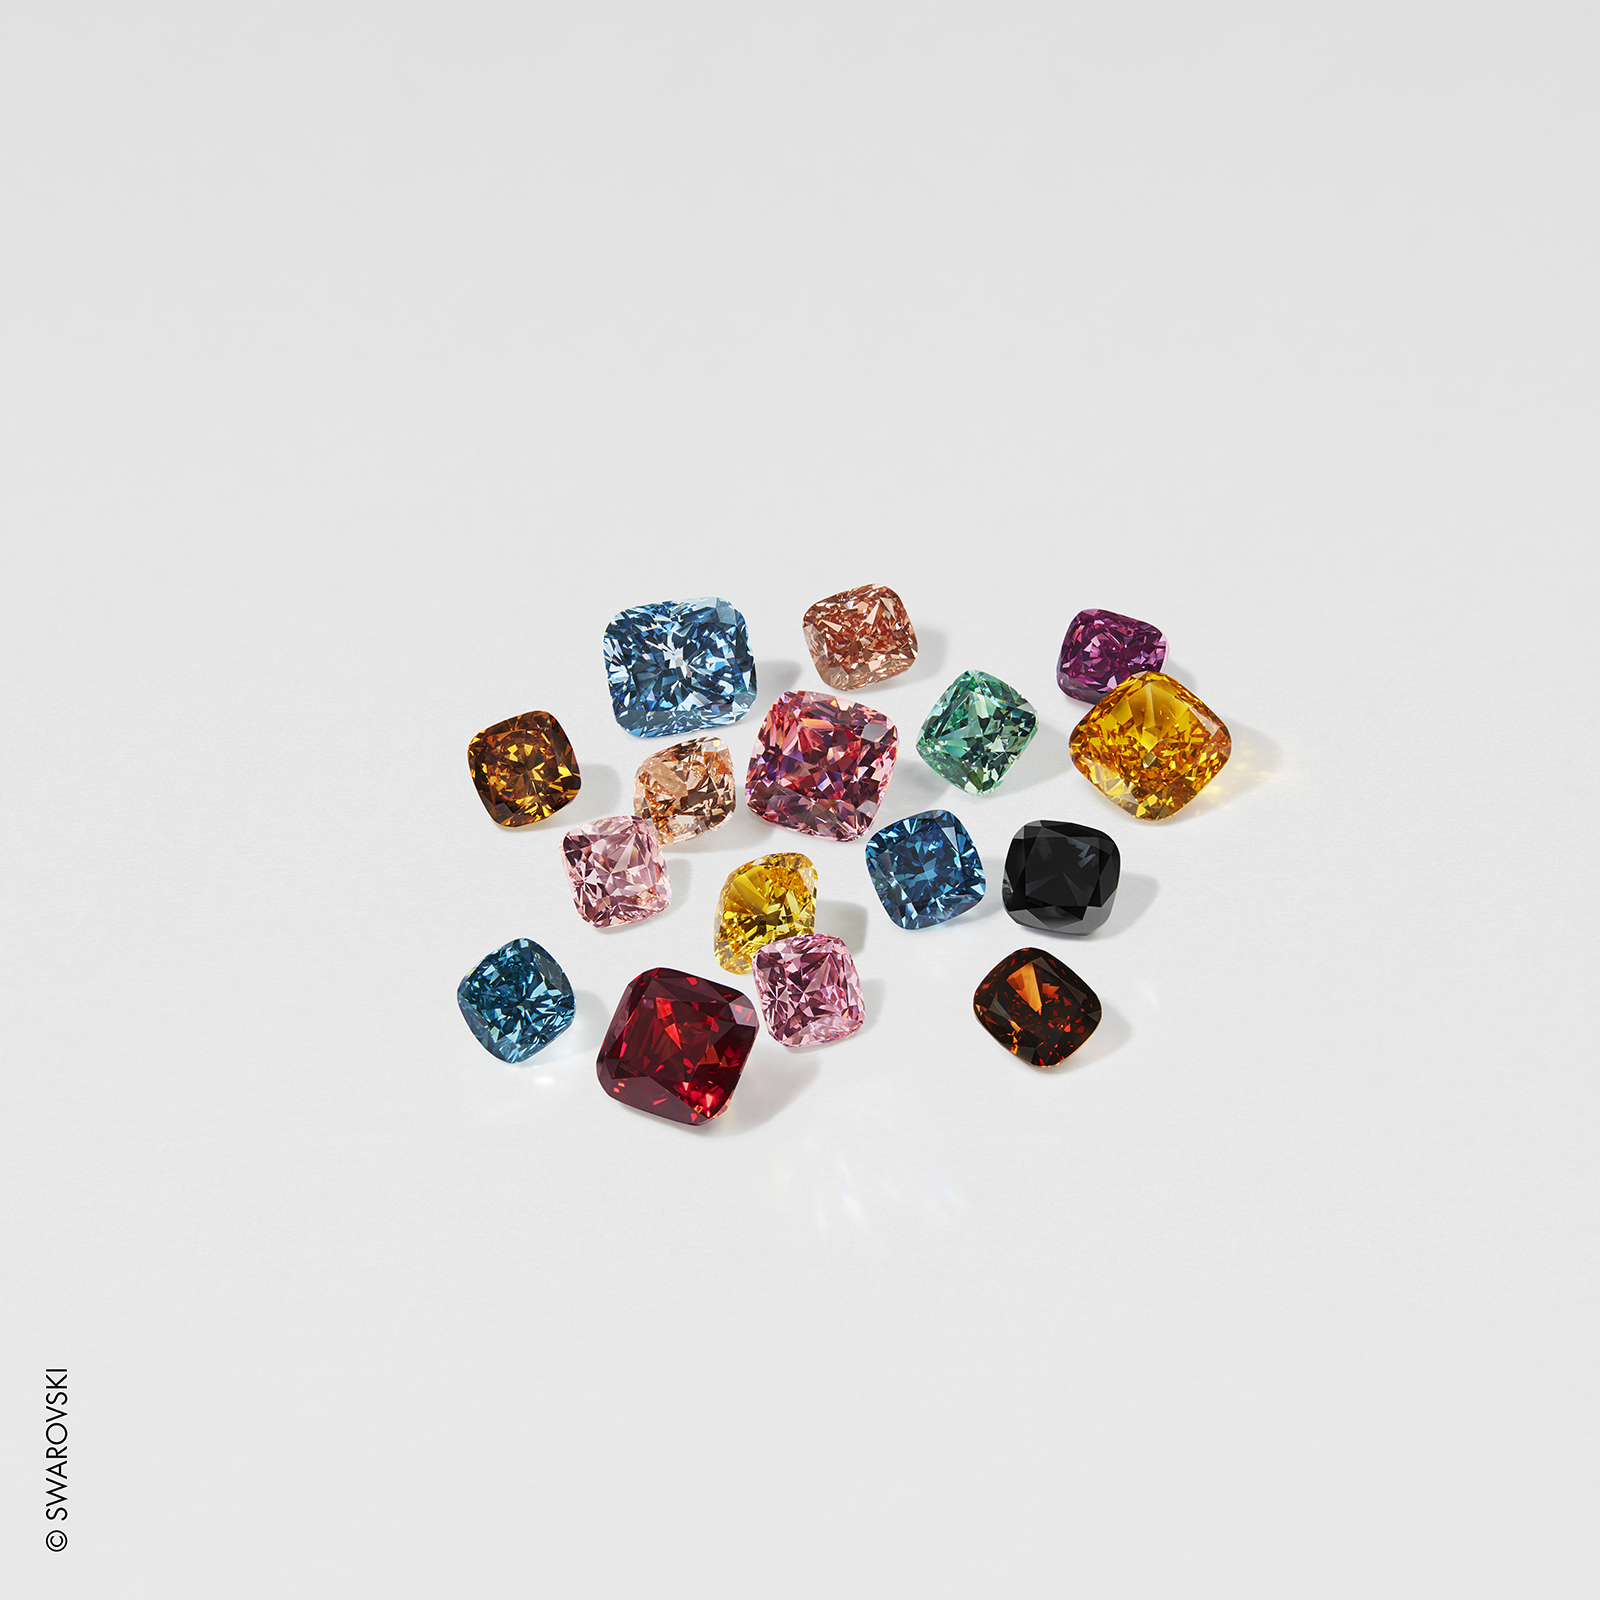 Swarovski lab-grown diamonds.